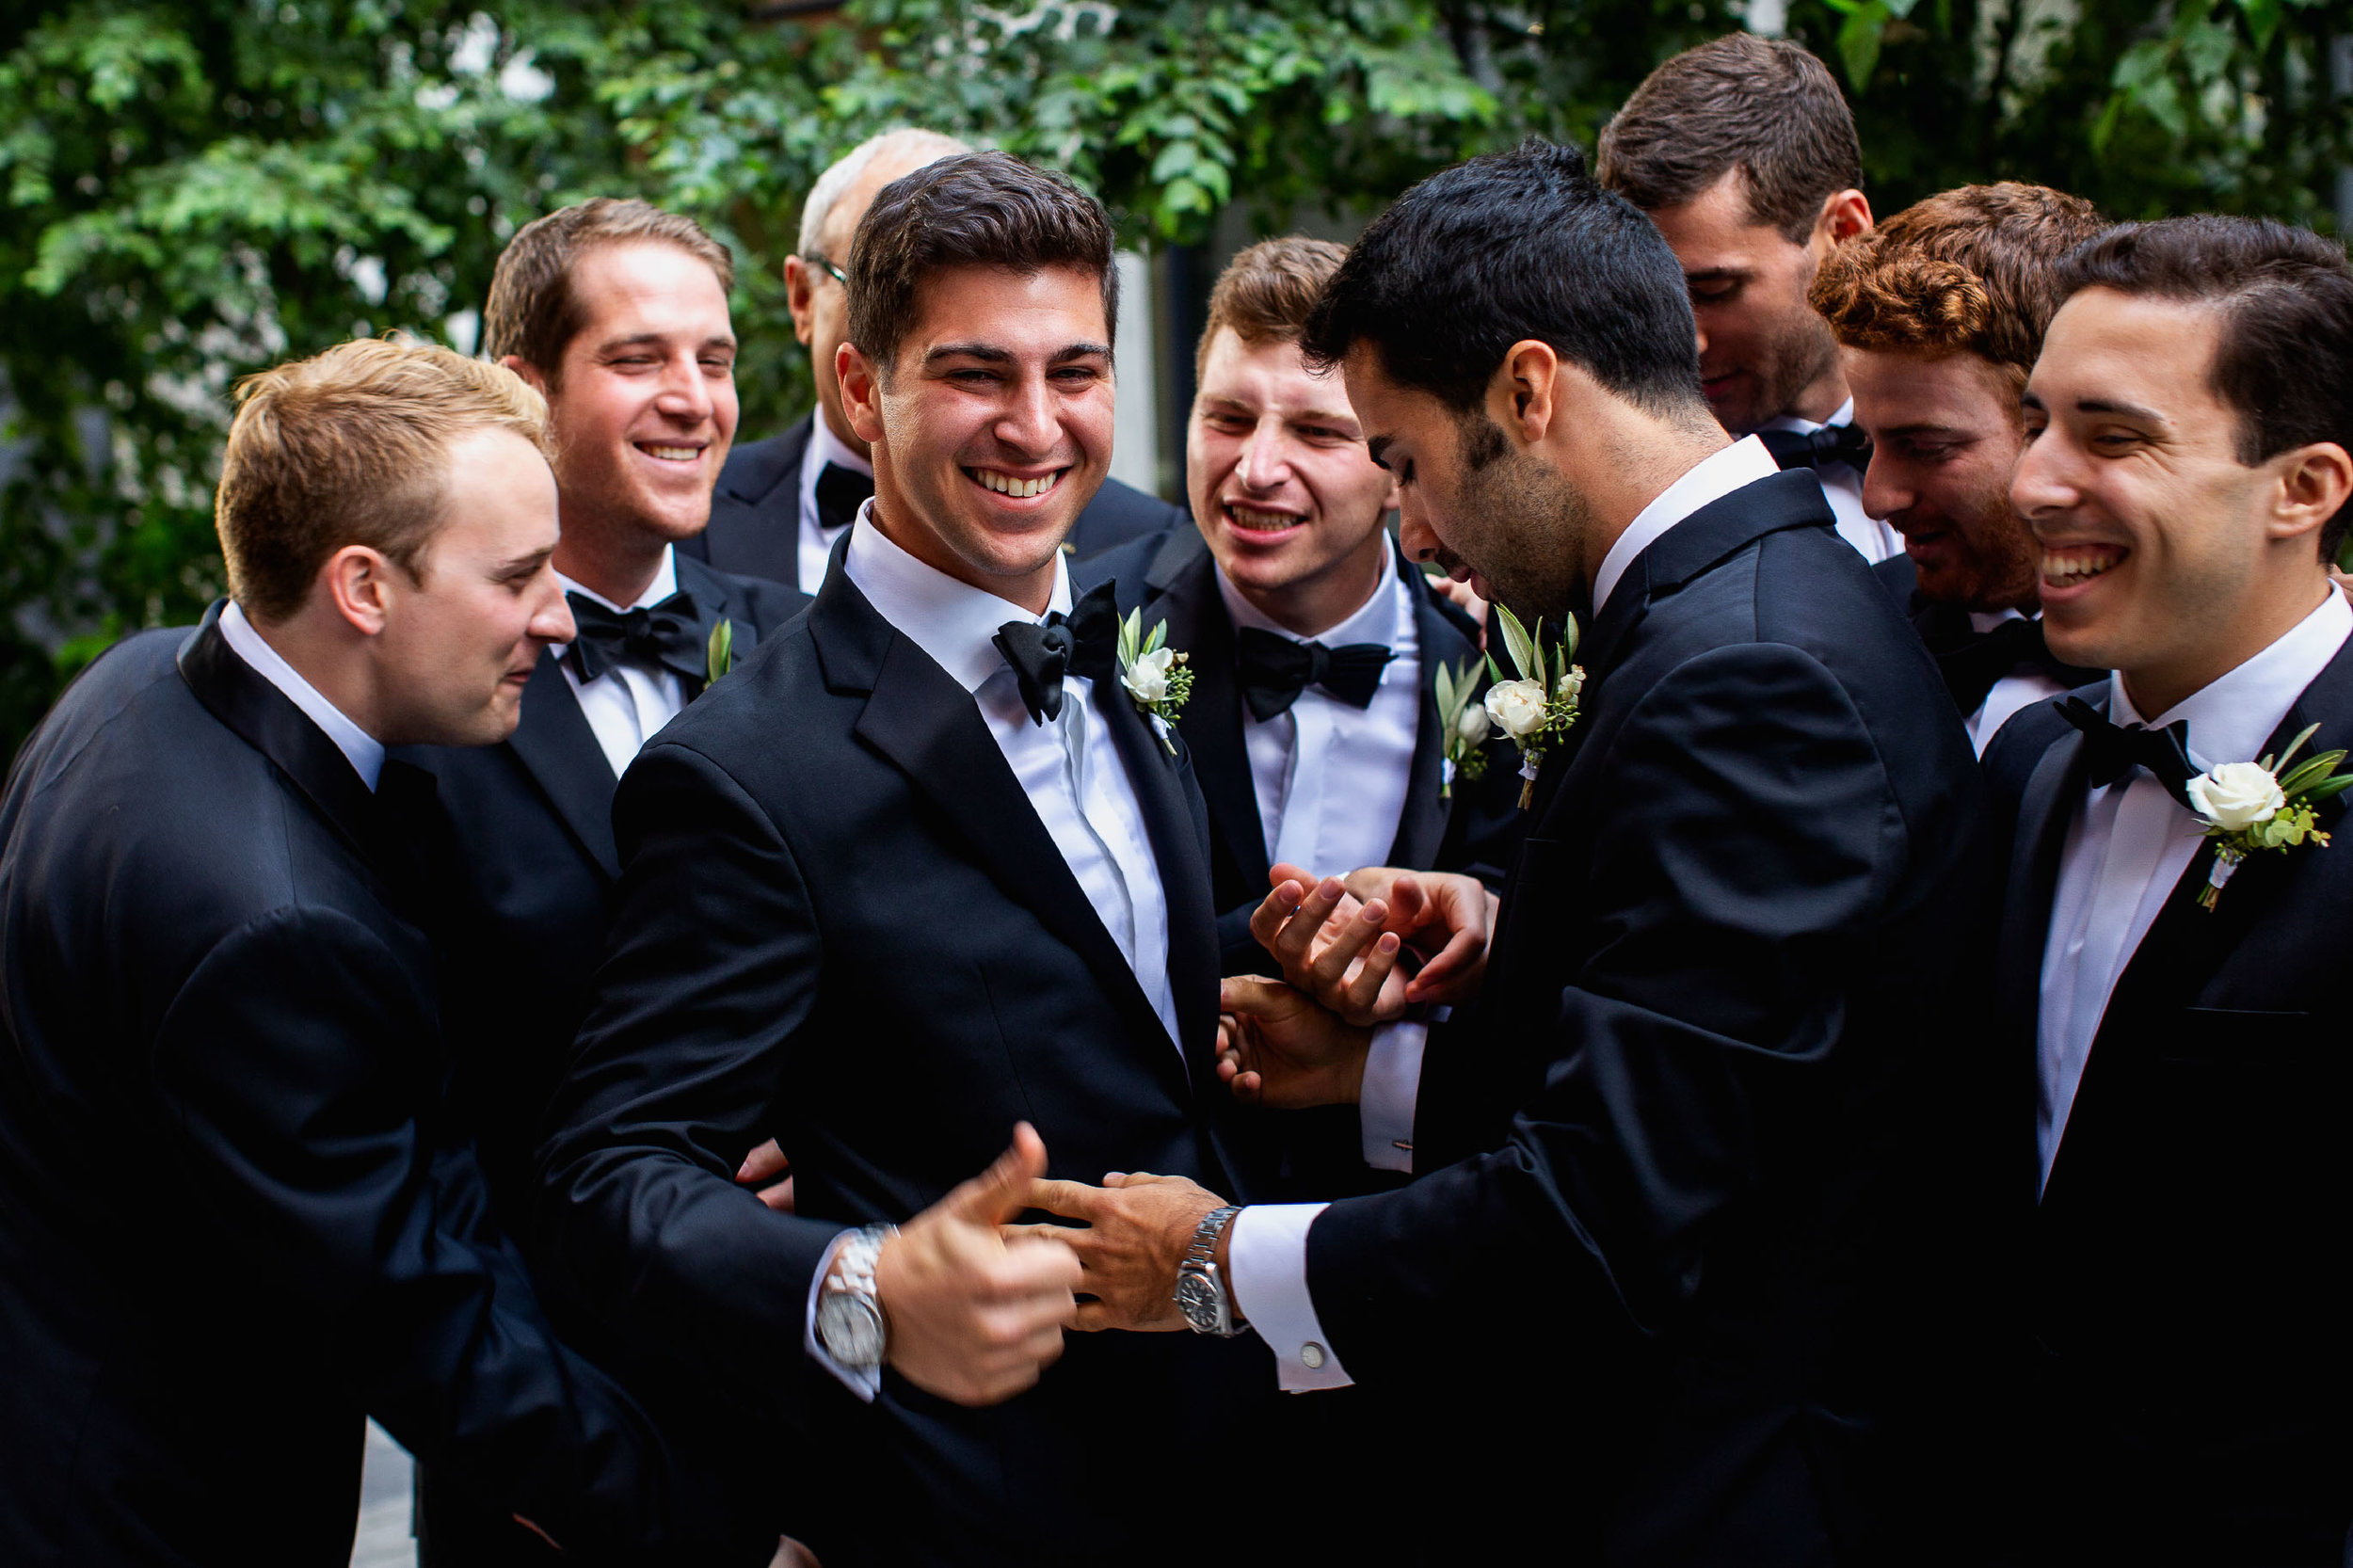 nonesuch_nyc_wedding_photographers_TheWilliamevalehotel_0213.jpg